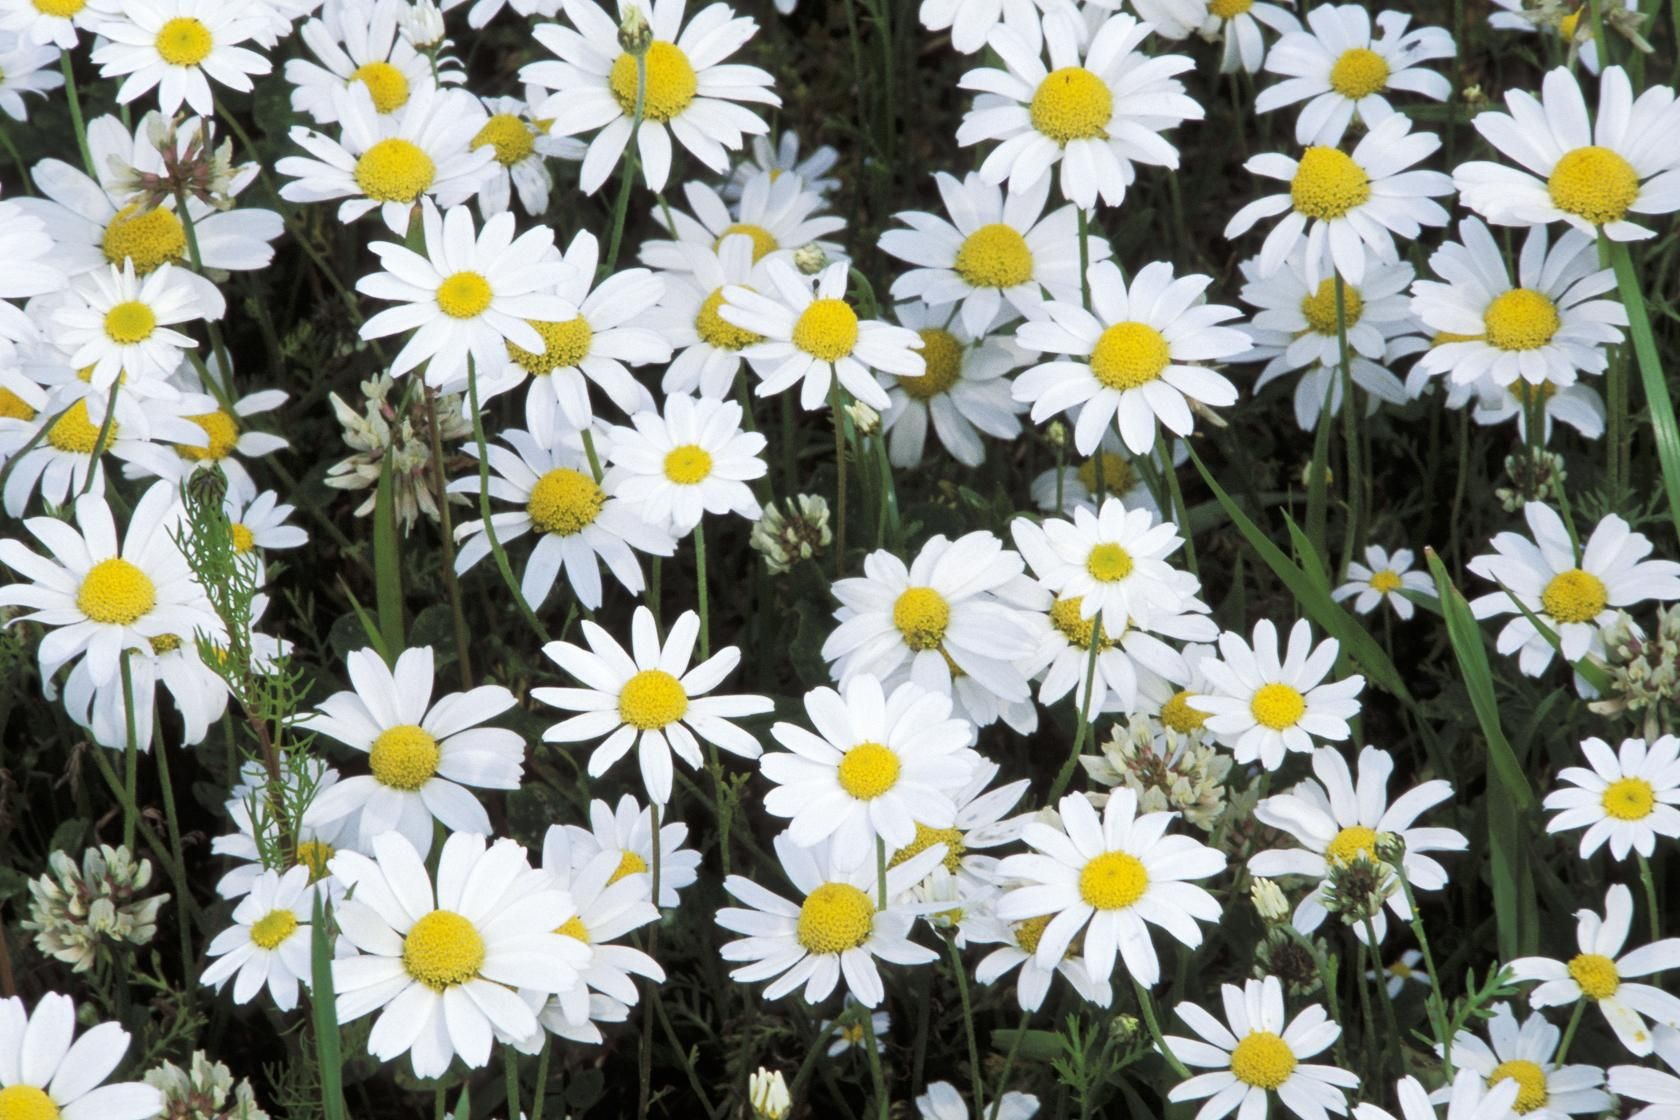 Corn chamomile or field chamomile anthemis arvensis annual the corn chamomile also known as field chamomile a mass of daisy like white flowers with yellow centres appears on this plant from late may to september izmirmasajfo Choice Image